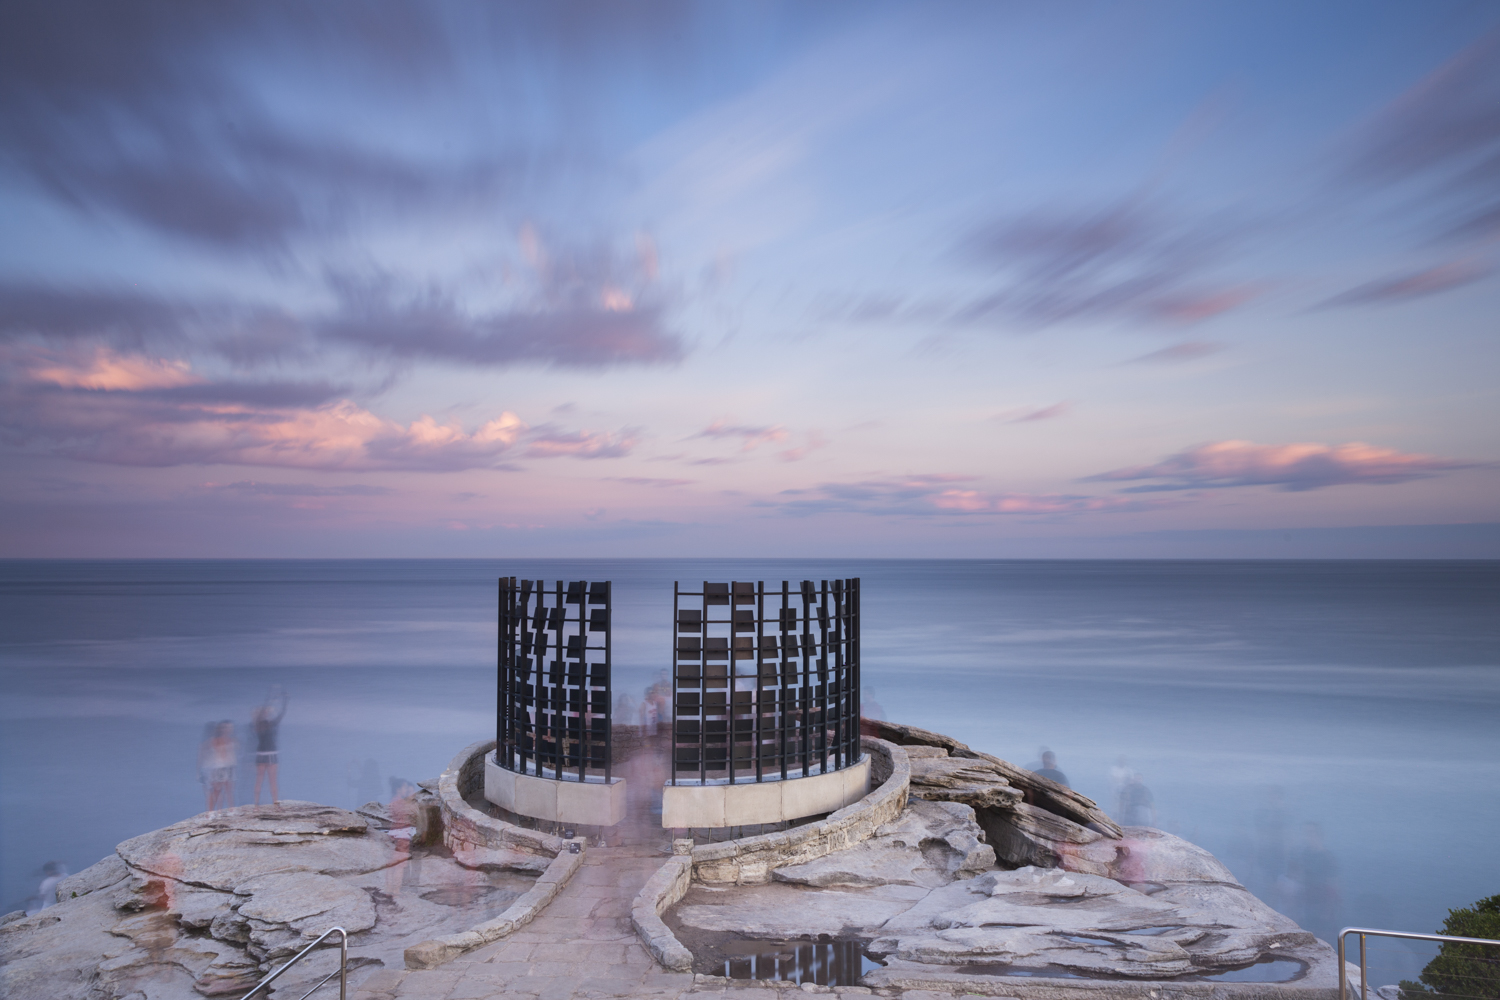 Bondi's Sculpture by the Sea in Sydney